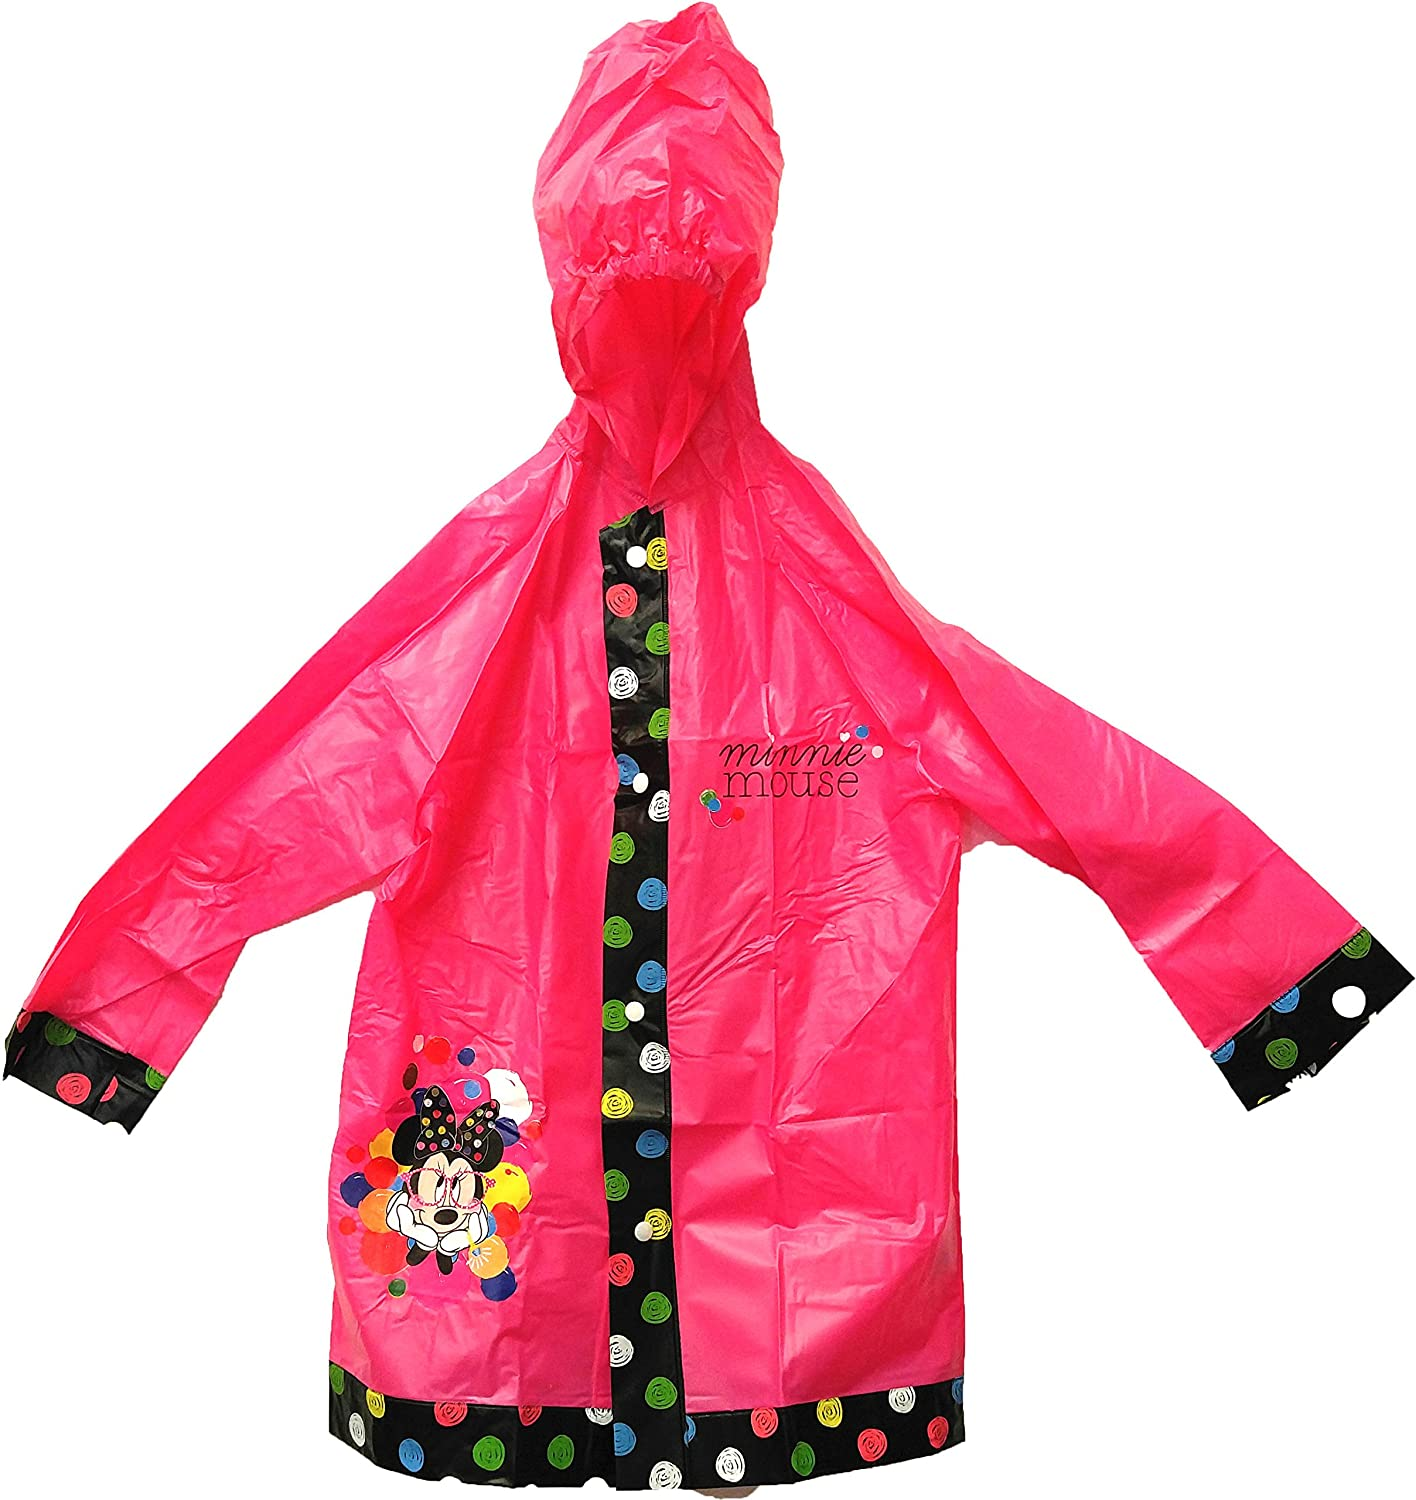 Disneys Minnie Mouse Childrens Rain Slicker in S//M